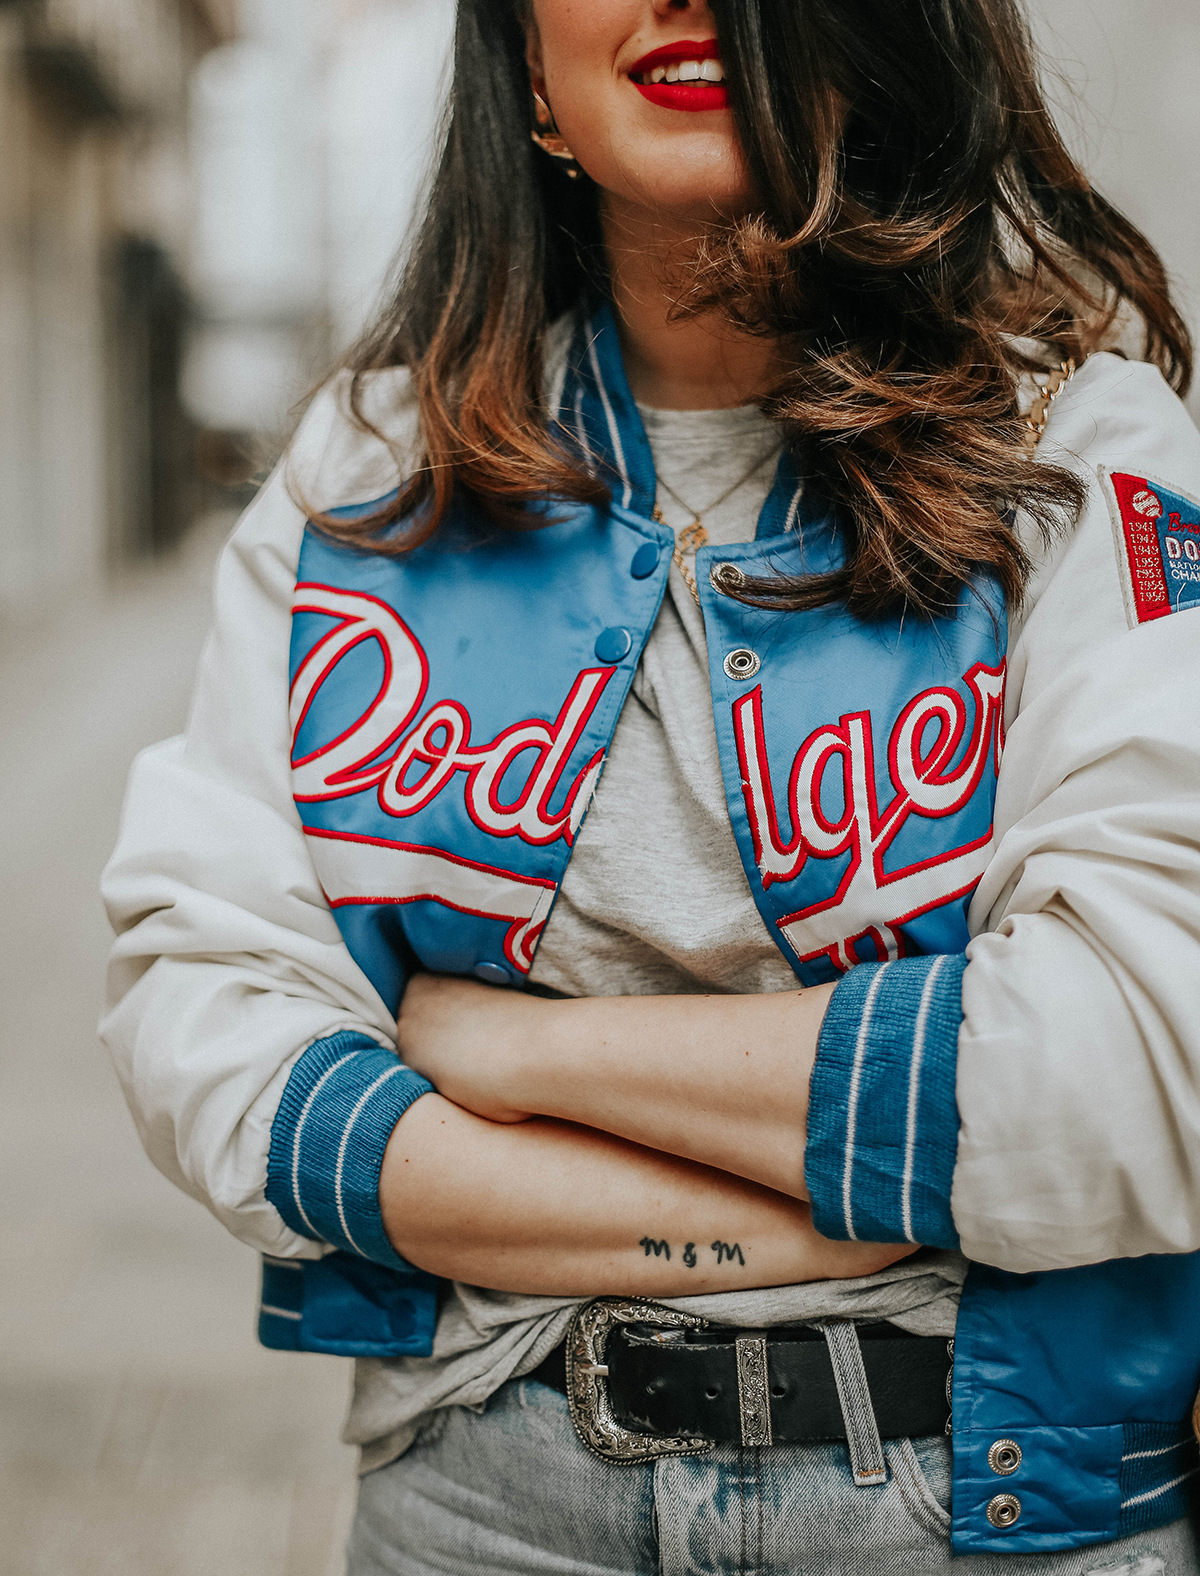 dodgers-bomber-converse-look-streetstyle-myblueberrynightsblog7